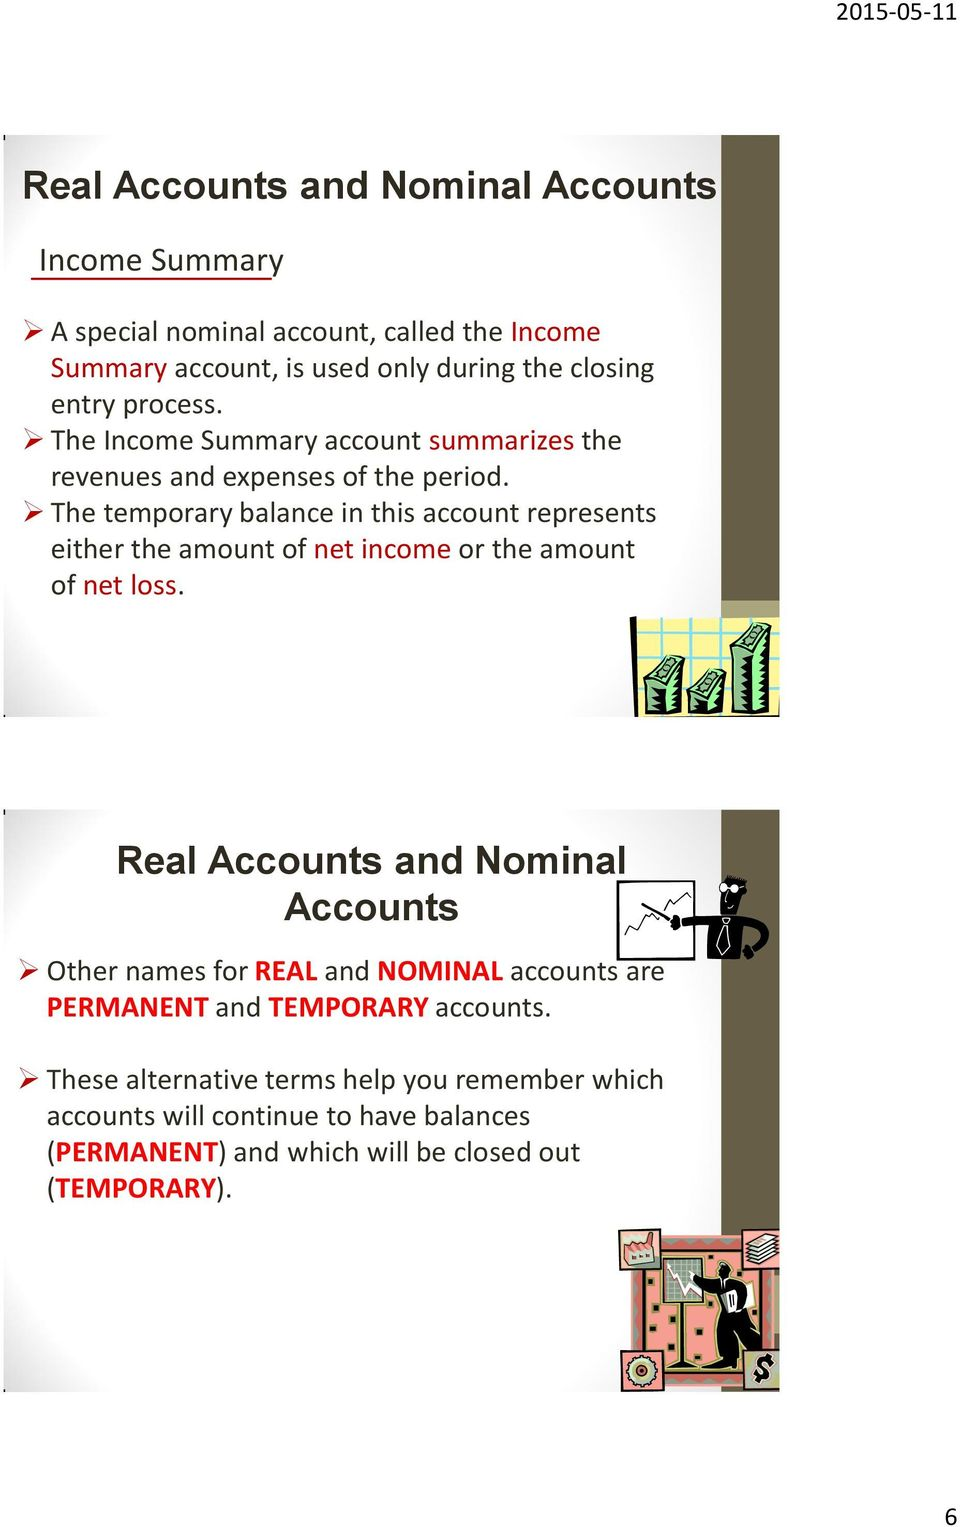 The temporary balance in this account represents either the amount of net income or the amount of net loss.